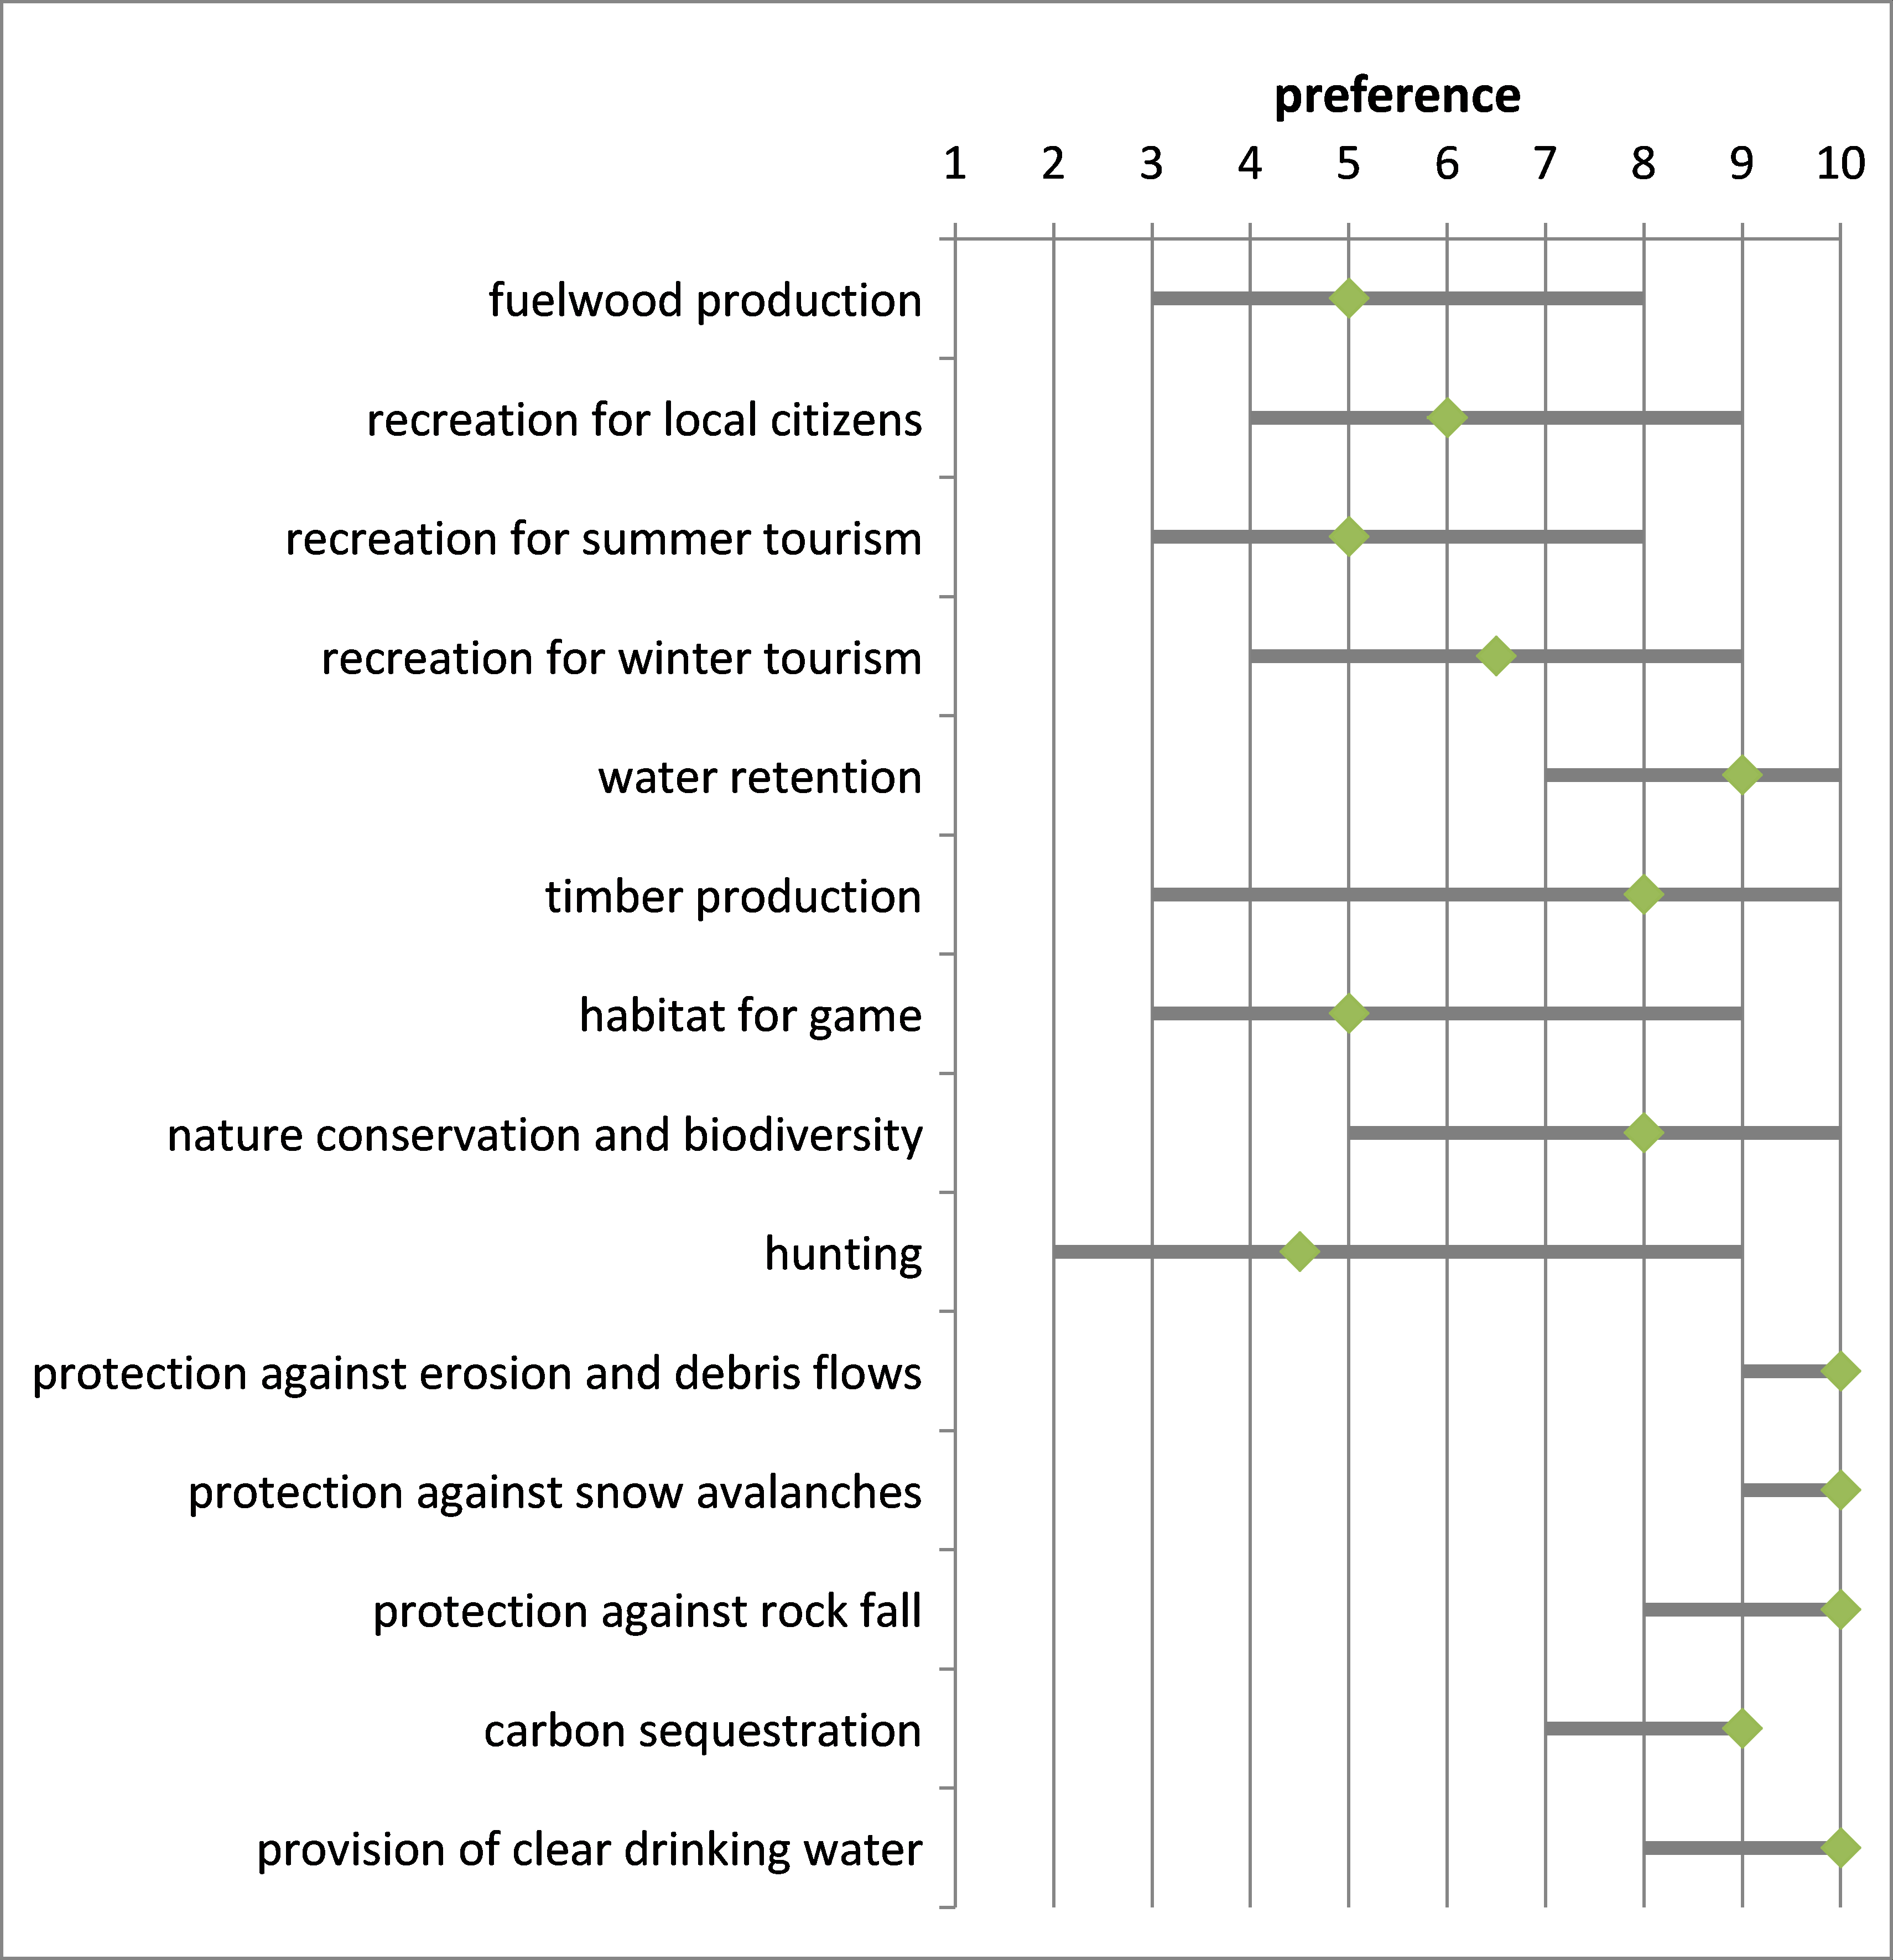 Figure 12: Importance of forest ecosystem goods and services (1=low relevance, 10=high relevance) in the Montafon. Grey bars represent the response of a panel of (n) different stakeholder representatives. Diamond symbols indicate the median, the grey lines indicate minimum and maximum values.